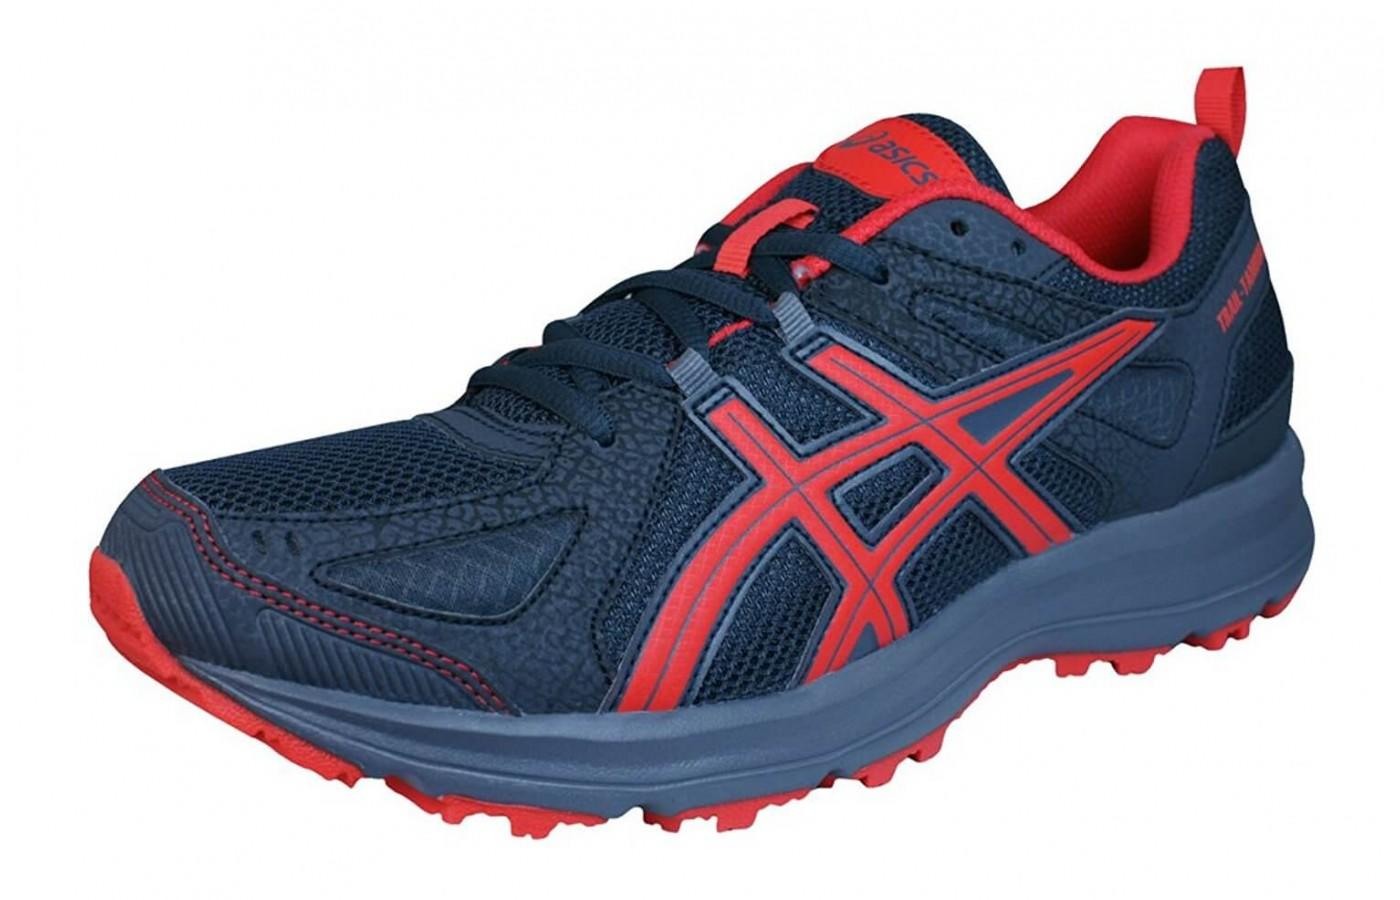 the Asics Gel Tambora 5 shown from the front/side